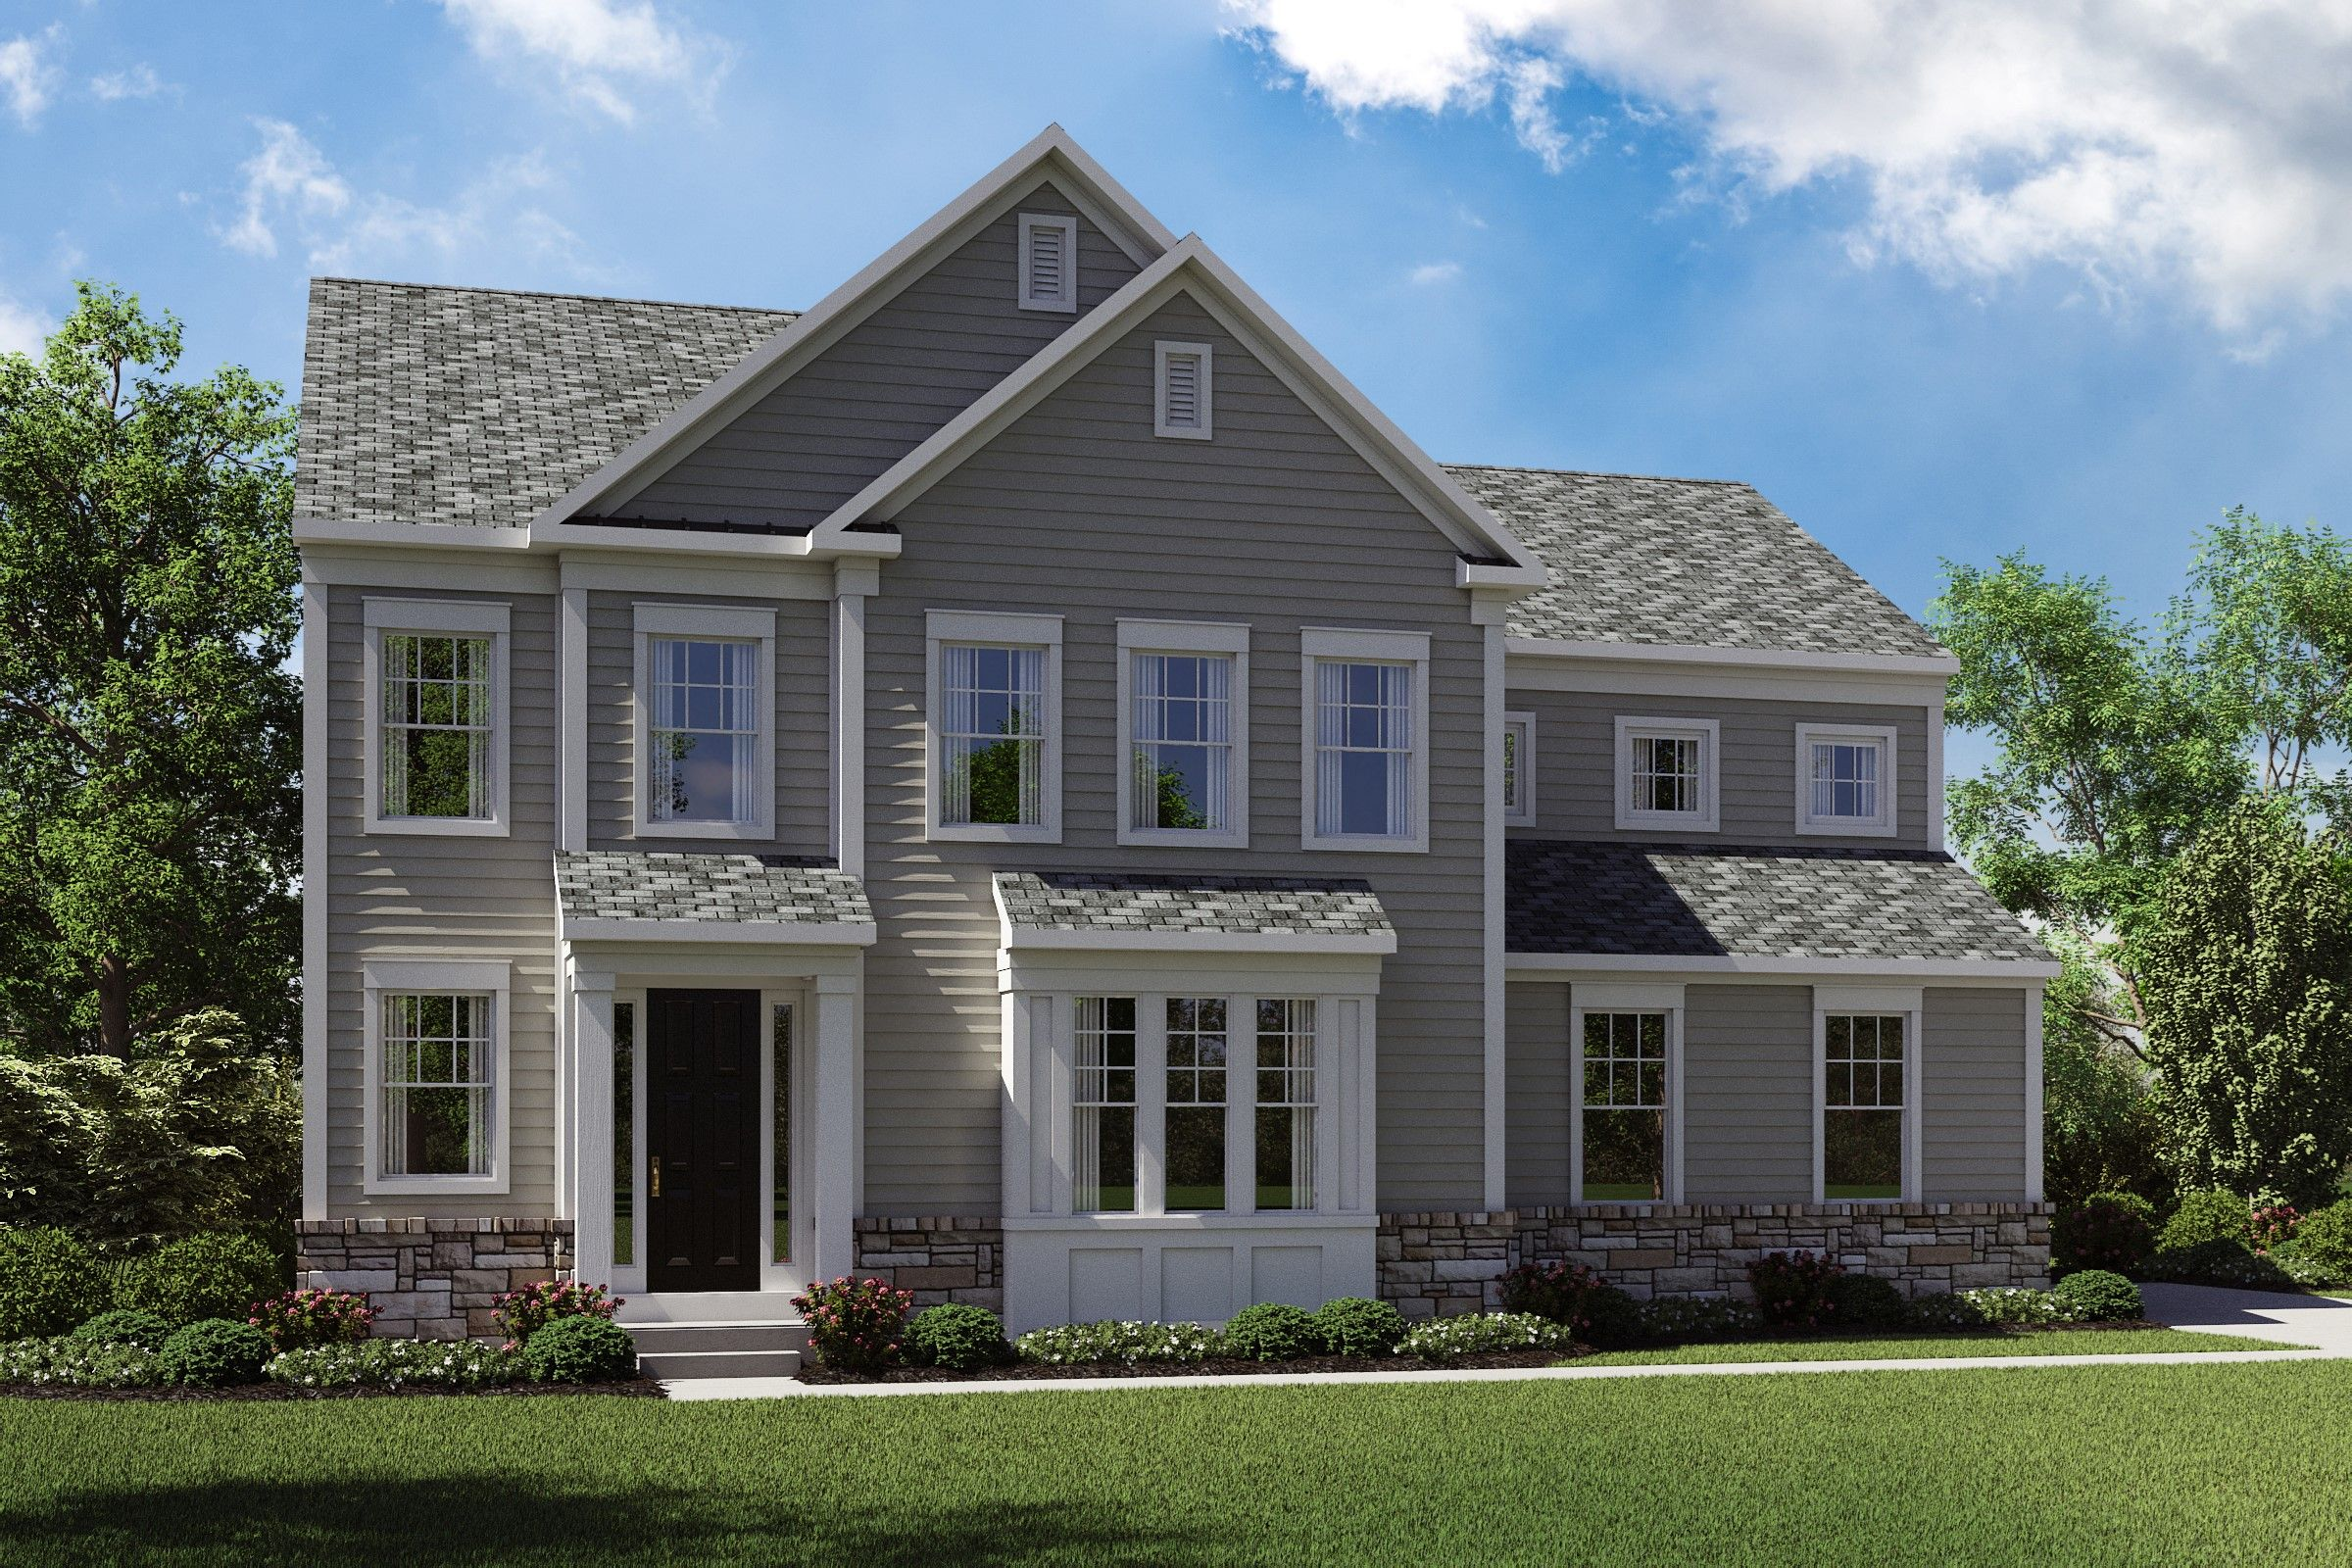 New Homes In Perth Amboy Nj 630 Communities Newhomesource